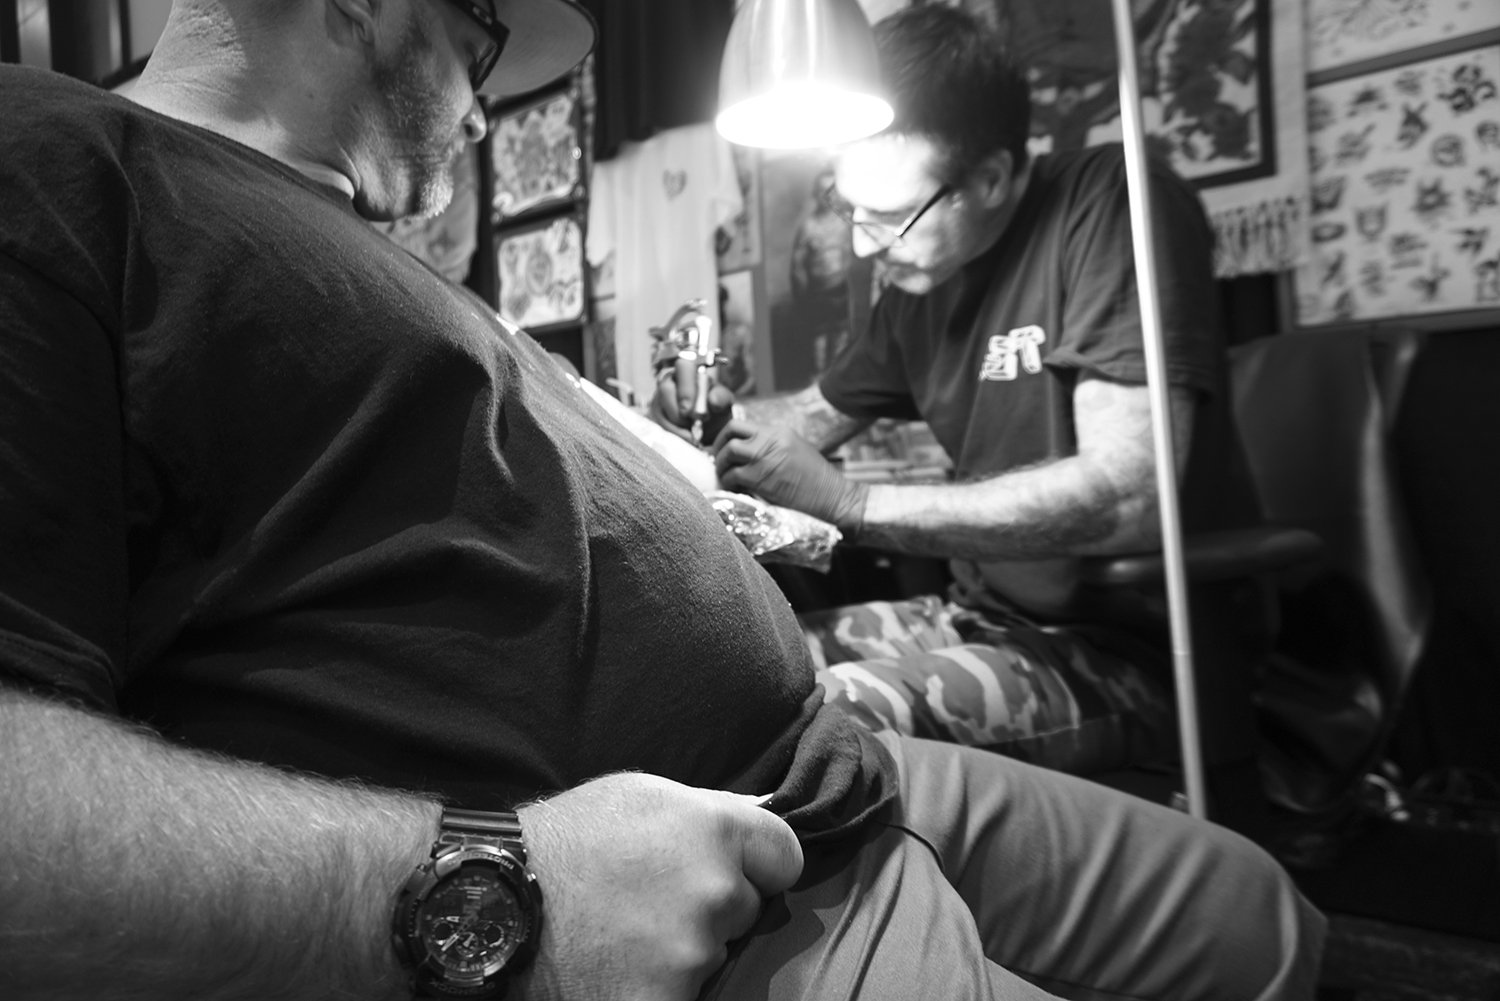 Tim Hendricks (miami ink) tattooing client at event